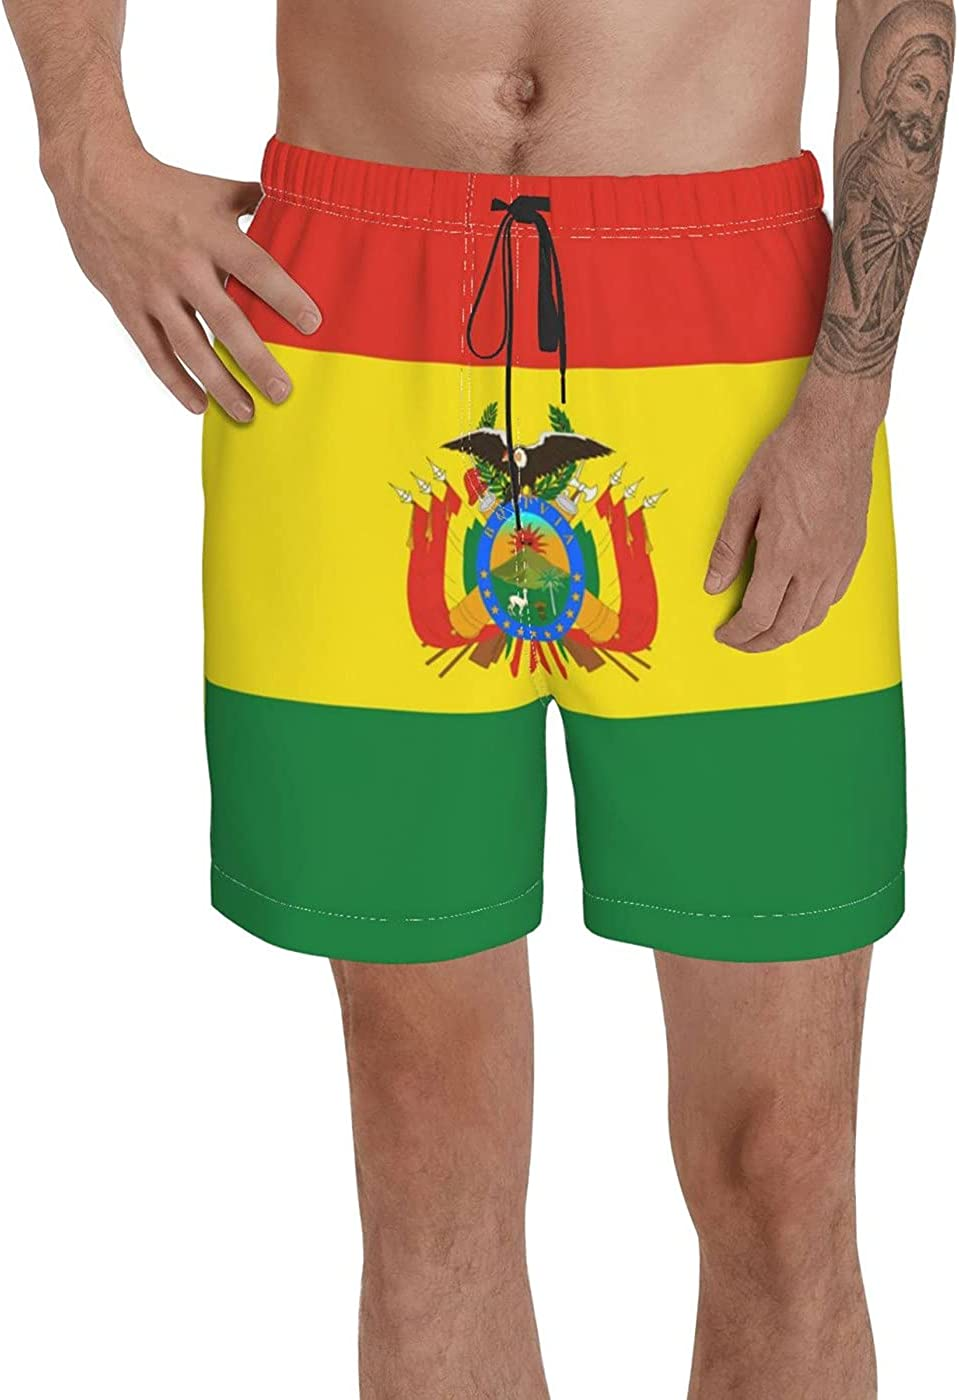 Count Bolivia Flag Men's 3D Printed Funny Summer Quick Dry Swim Short Board Shorts with